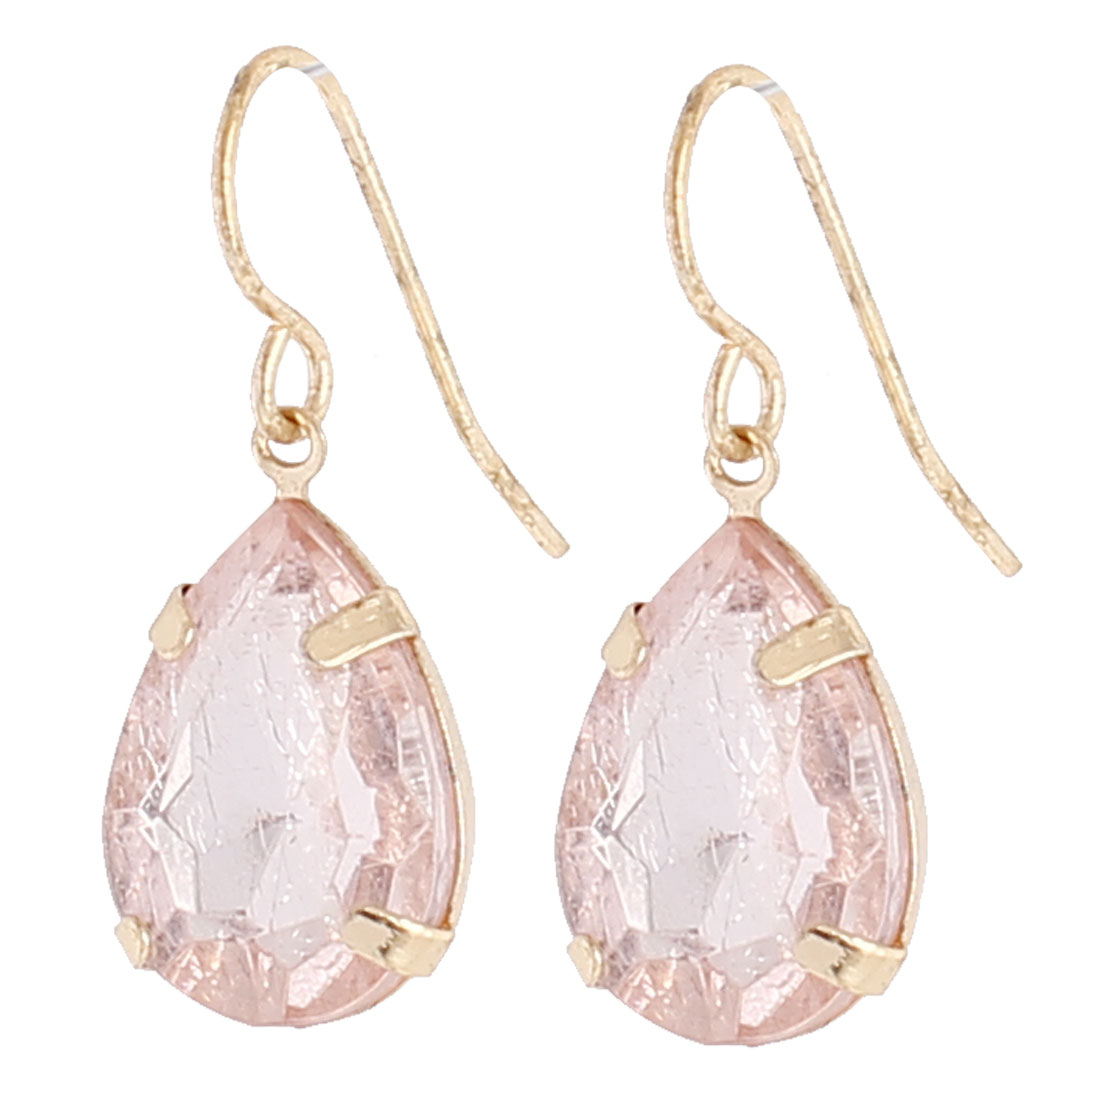 "Women Pink Faux Crystal Waterdrop Shape Dangling Pendant Metal Fish Hook Earrings Earbob Gold Tone 1"" Length Pair"